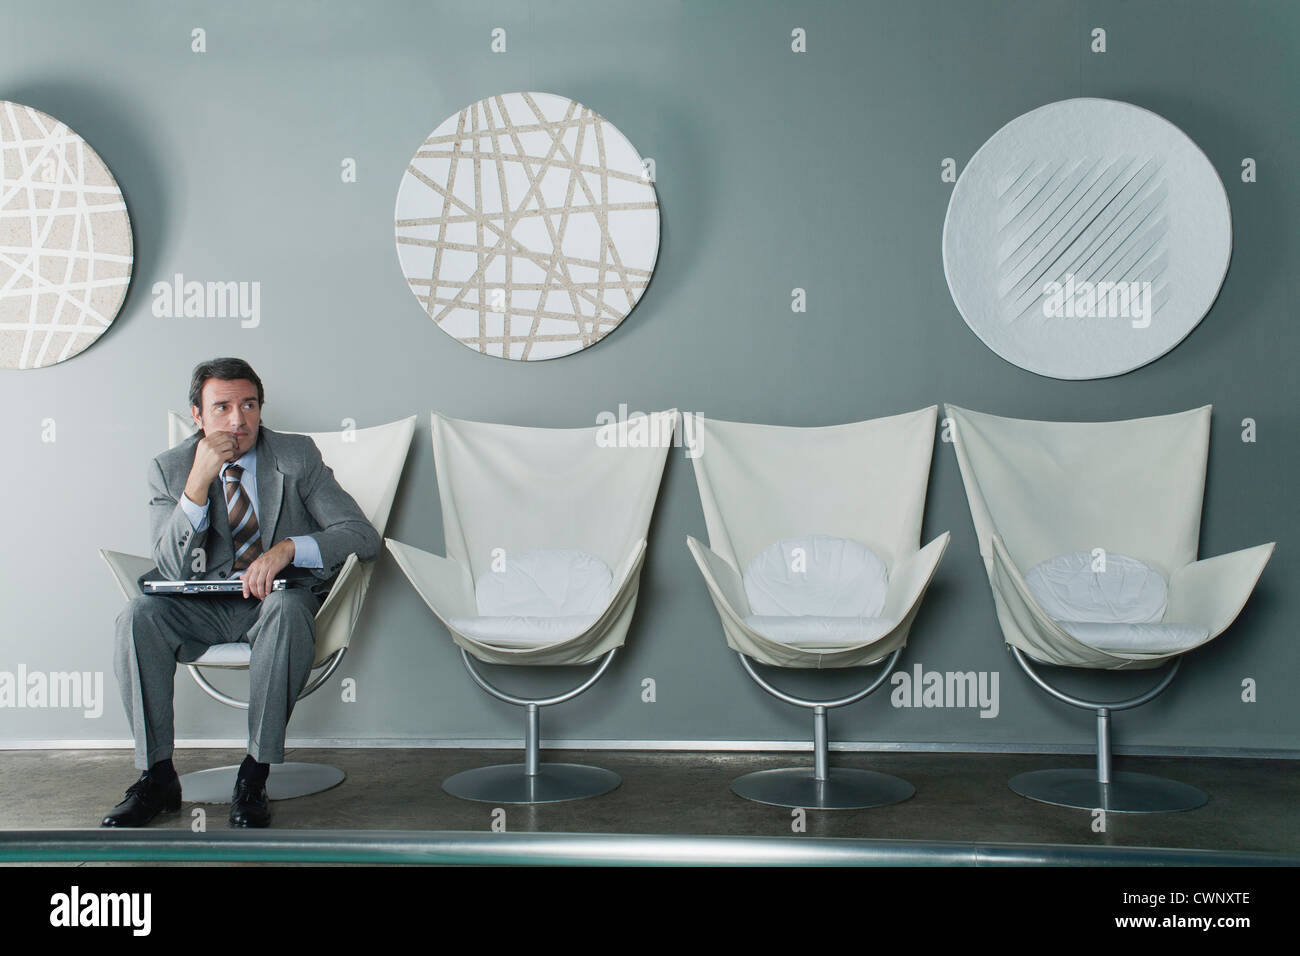 Mature businessman sitting at end of row of chairs in waiting room - Stock Image